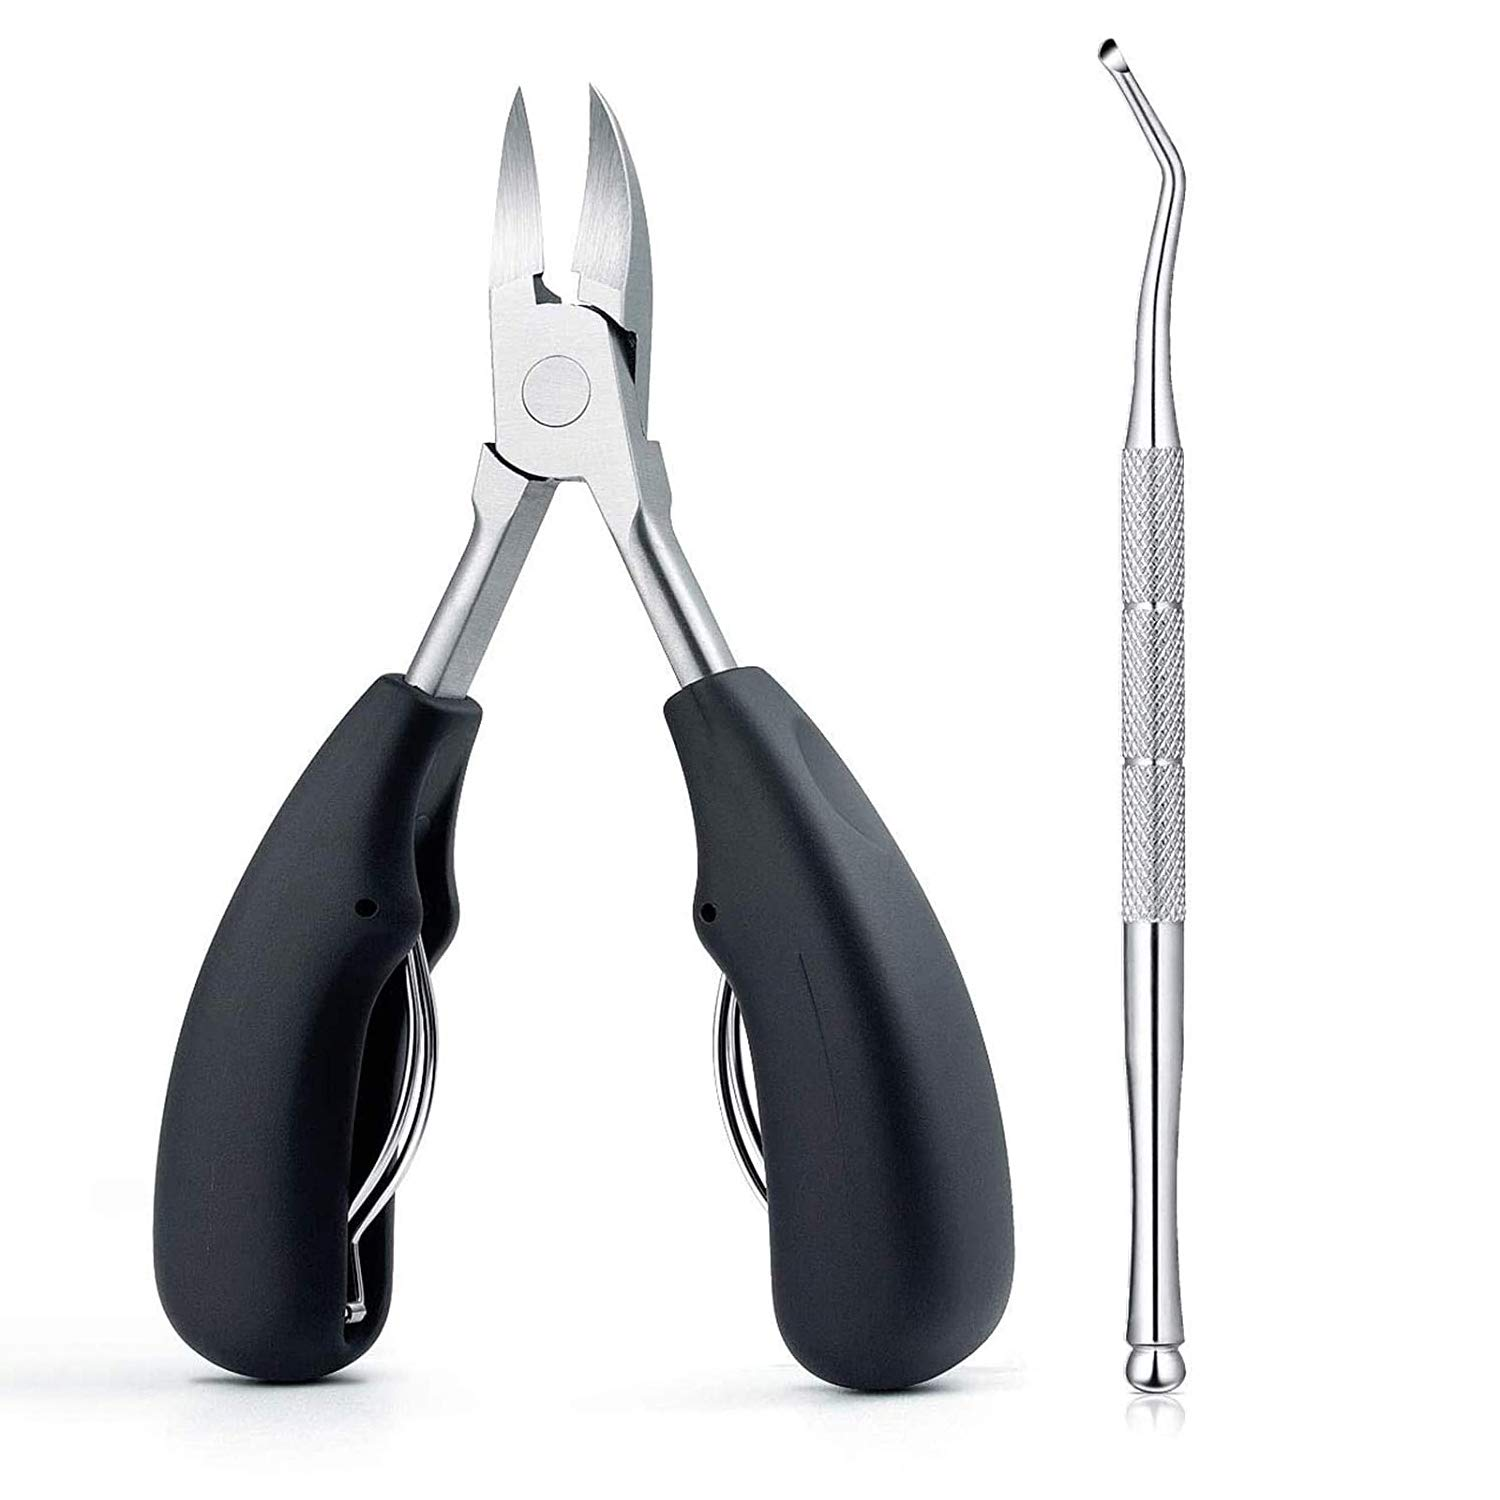 Limited price sale Zoopod New York Mall ingrown toenail tool Clipper Toenail clippers kit